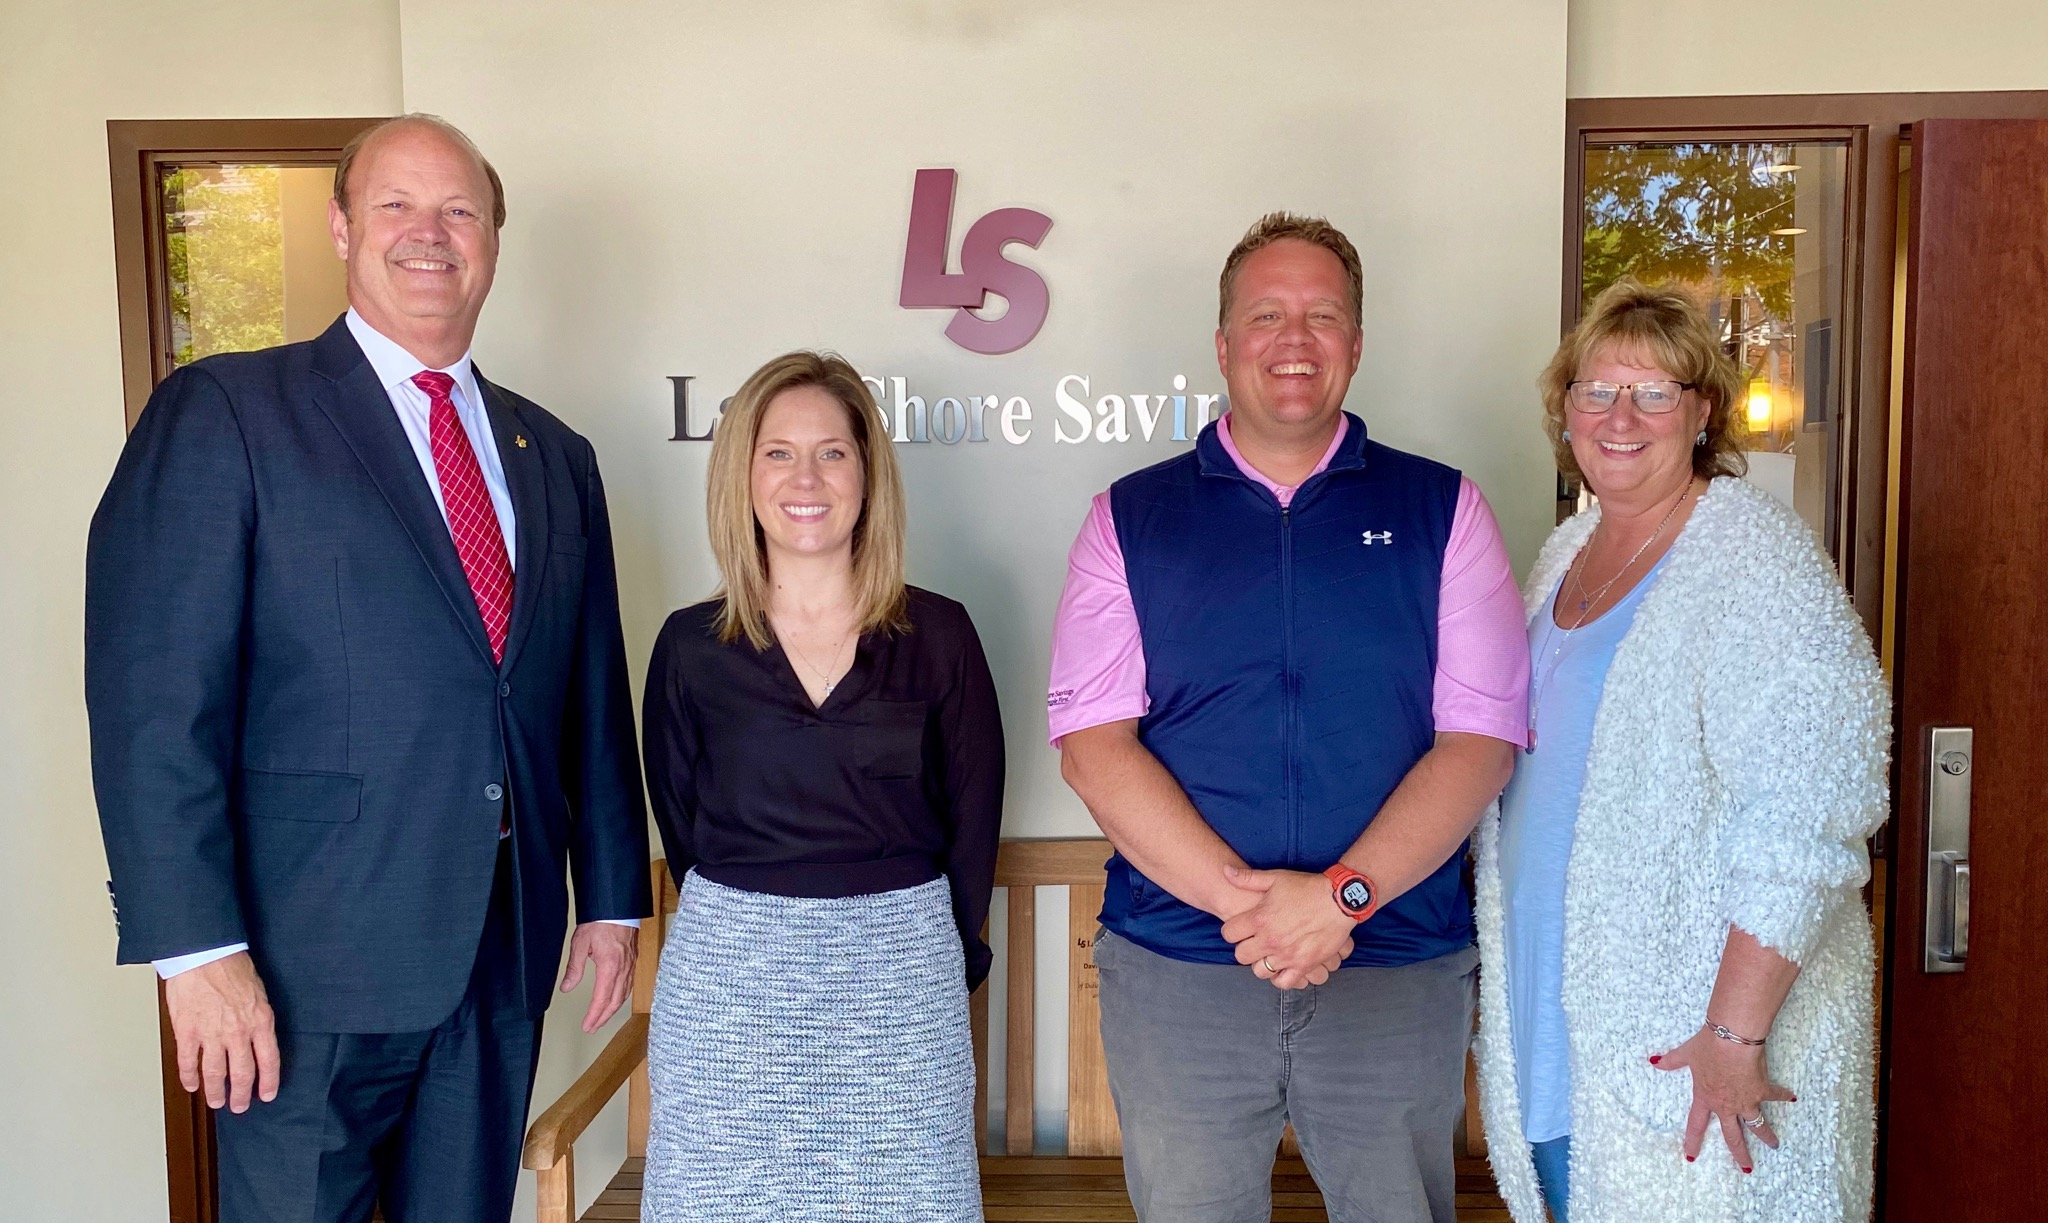 Pictured (l to r) – Daniel Reininga - President and Chief Executive Officer - Lake Shore Savings Bank, Kelly Dimitri - Chief Financial Officer – The Resource Center, Chris Anderson – Marketing Manager/TRC Golf Classic Chairman – The Resource Center, and Cindy Hitchcock – Vice President – Filling the Gap Inc.